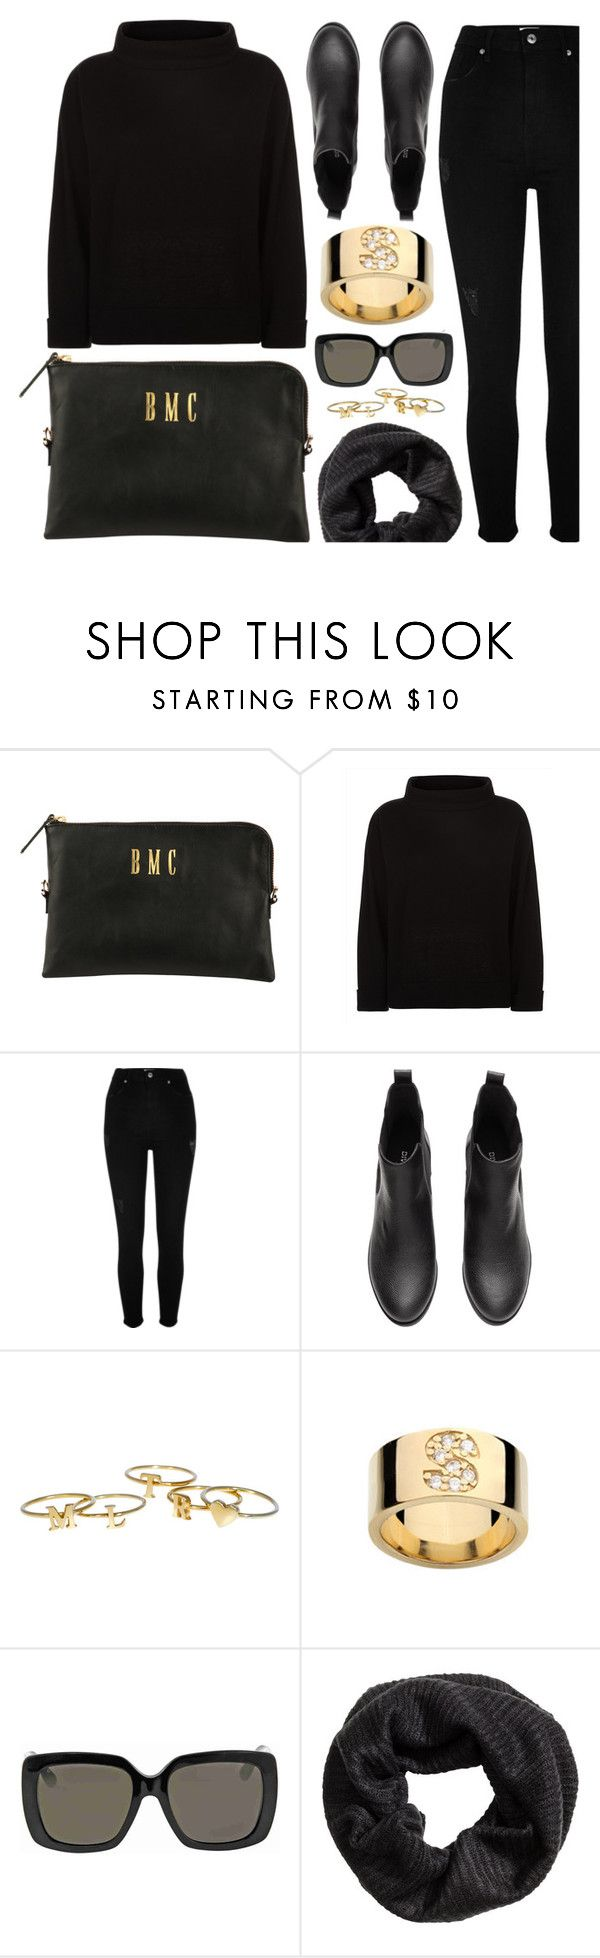 """""""Black & Gold"""" by mimicdesign ❤ liked on Polyvore featuring Jaeger, River Island, Gucci, gold and black"""